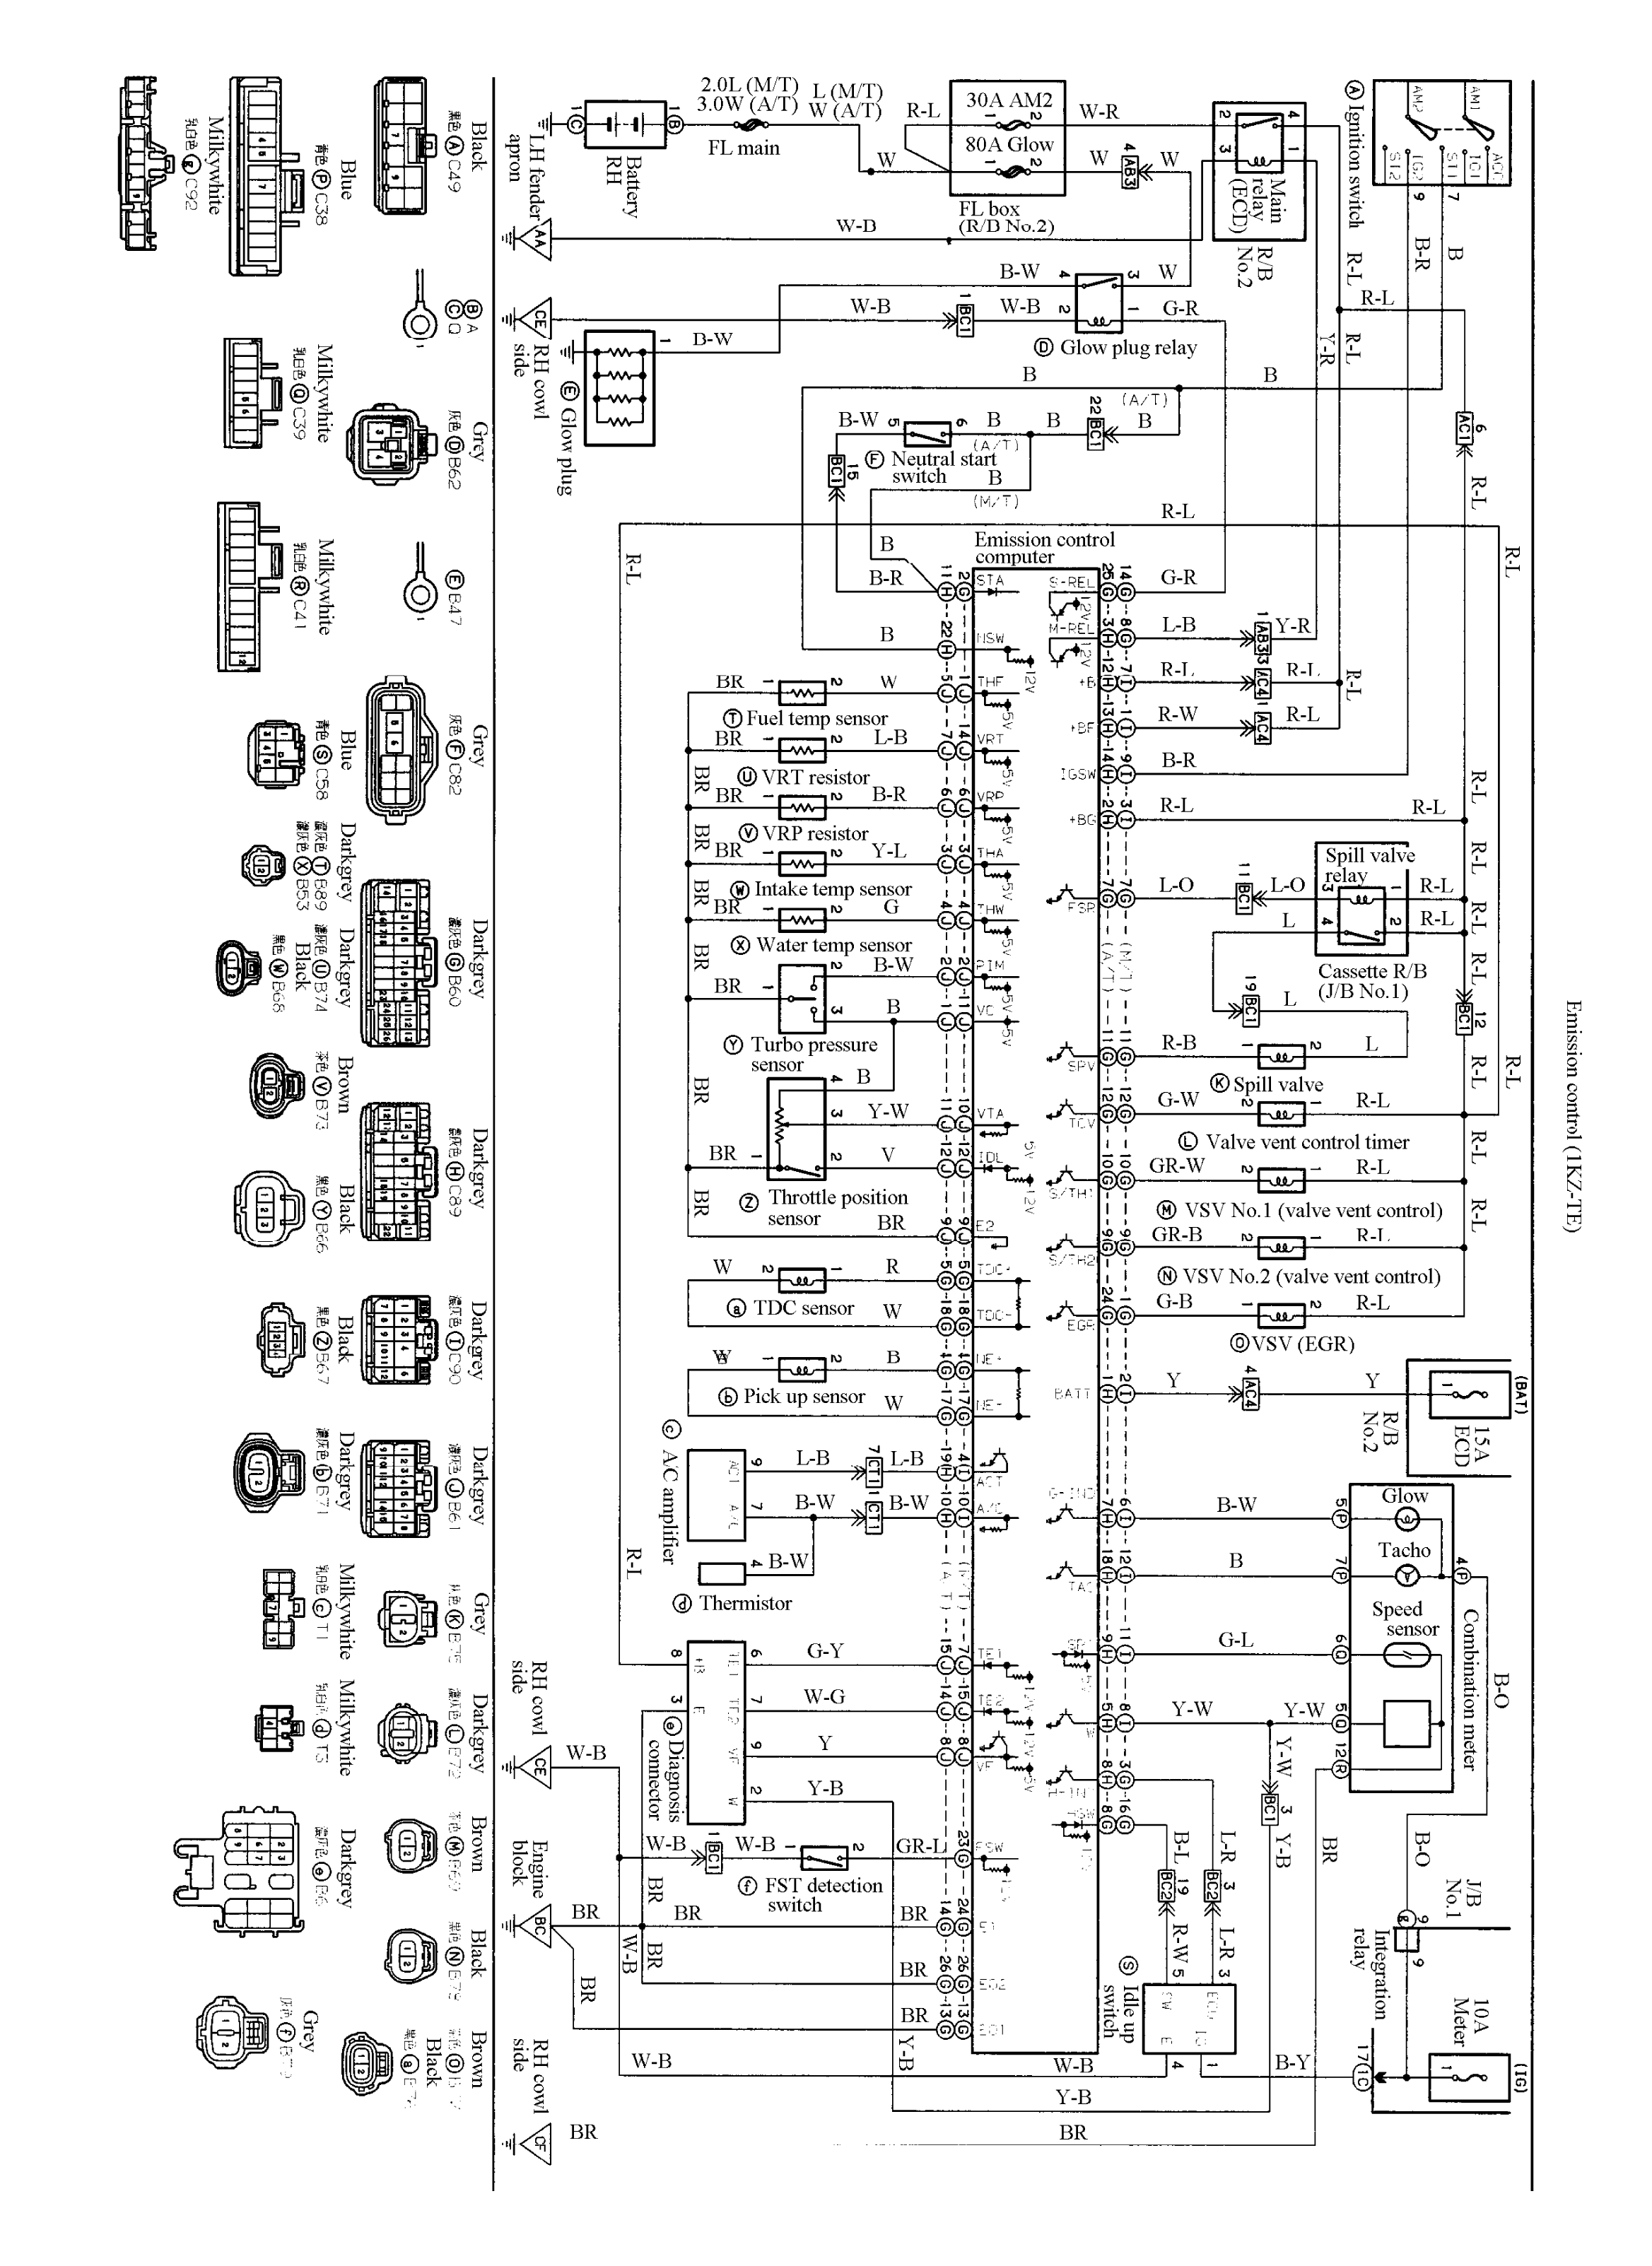 Toyota 1kz Ecu Pinout 2 Car Ecu Ecu Electrical Circuit Diagram